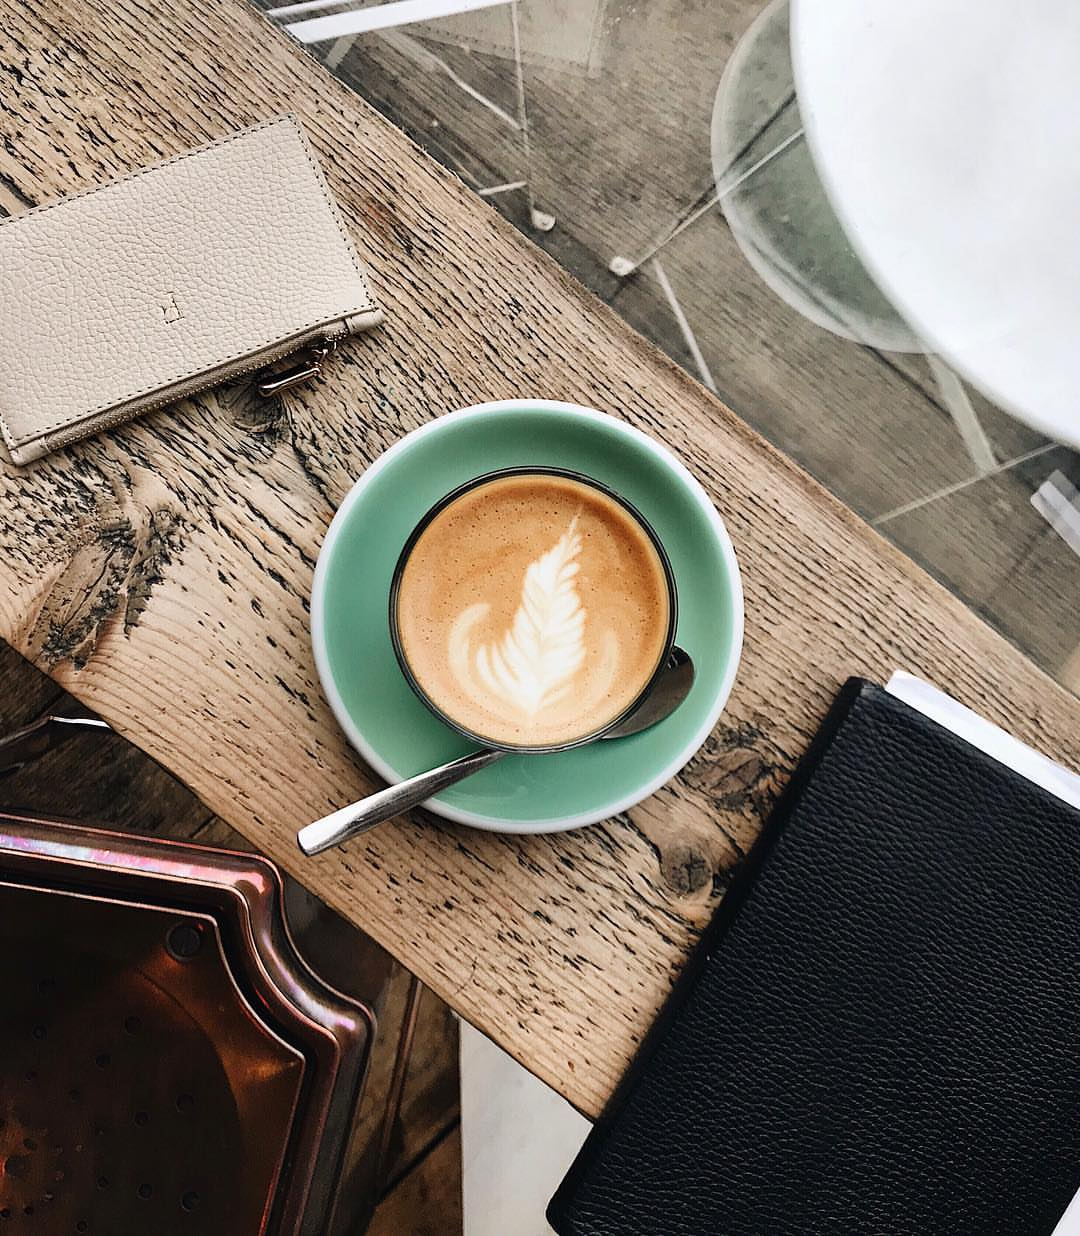 Coffee theme wallpapers from Instagram (not my pictures